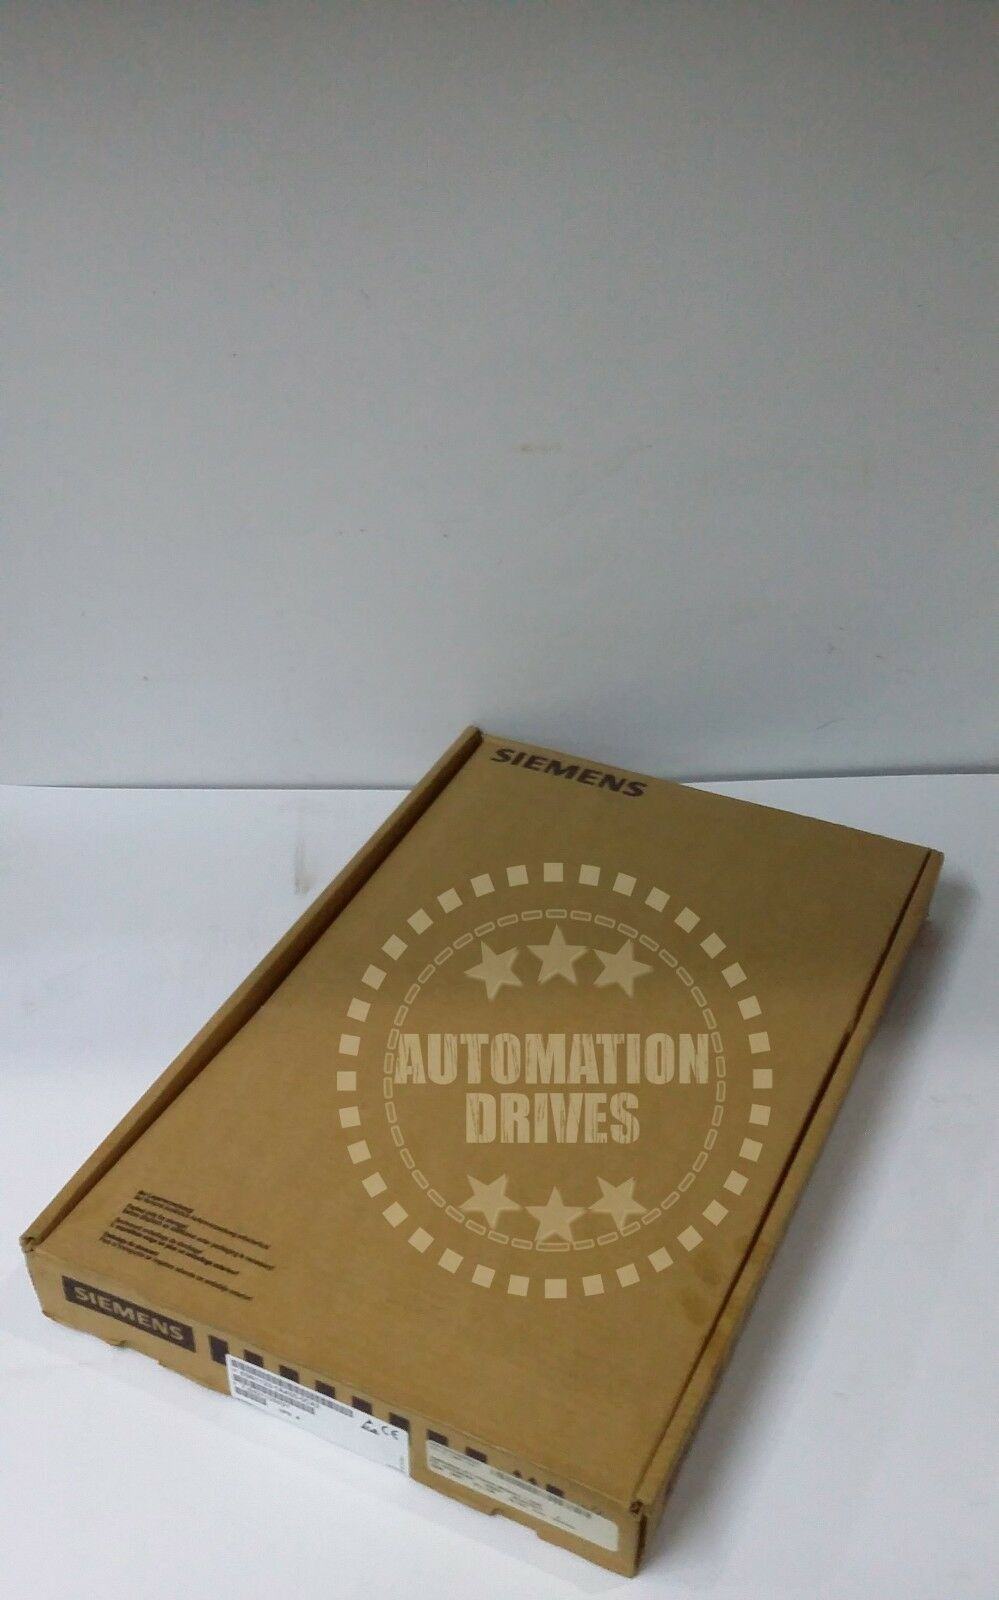 **NEW IN SEALED BOX*** SIEMENS SIMODRIVE 611 6SN1123-1AA00-0​CA2 NIB